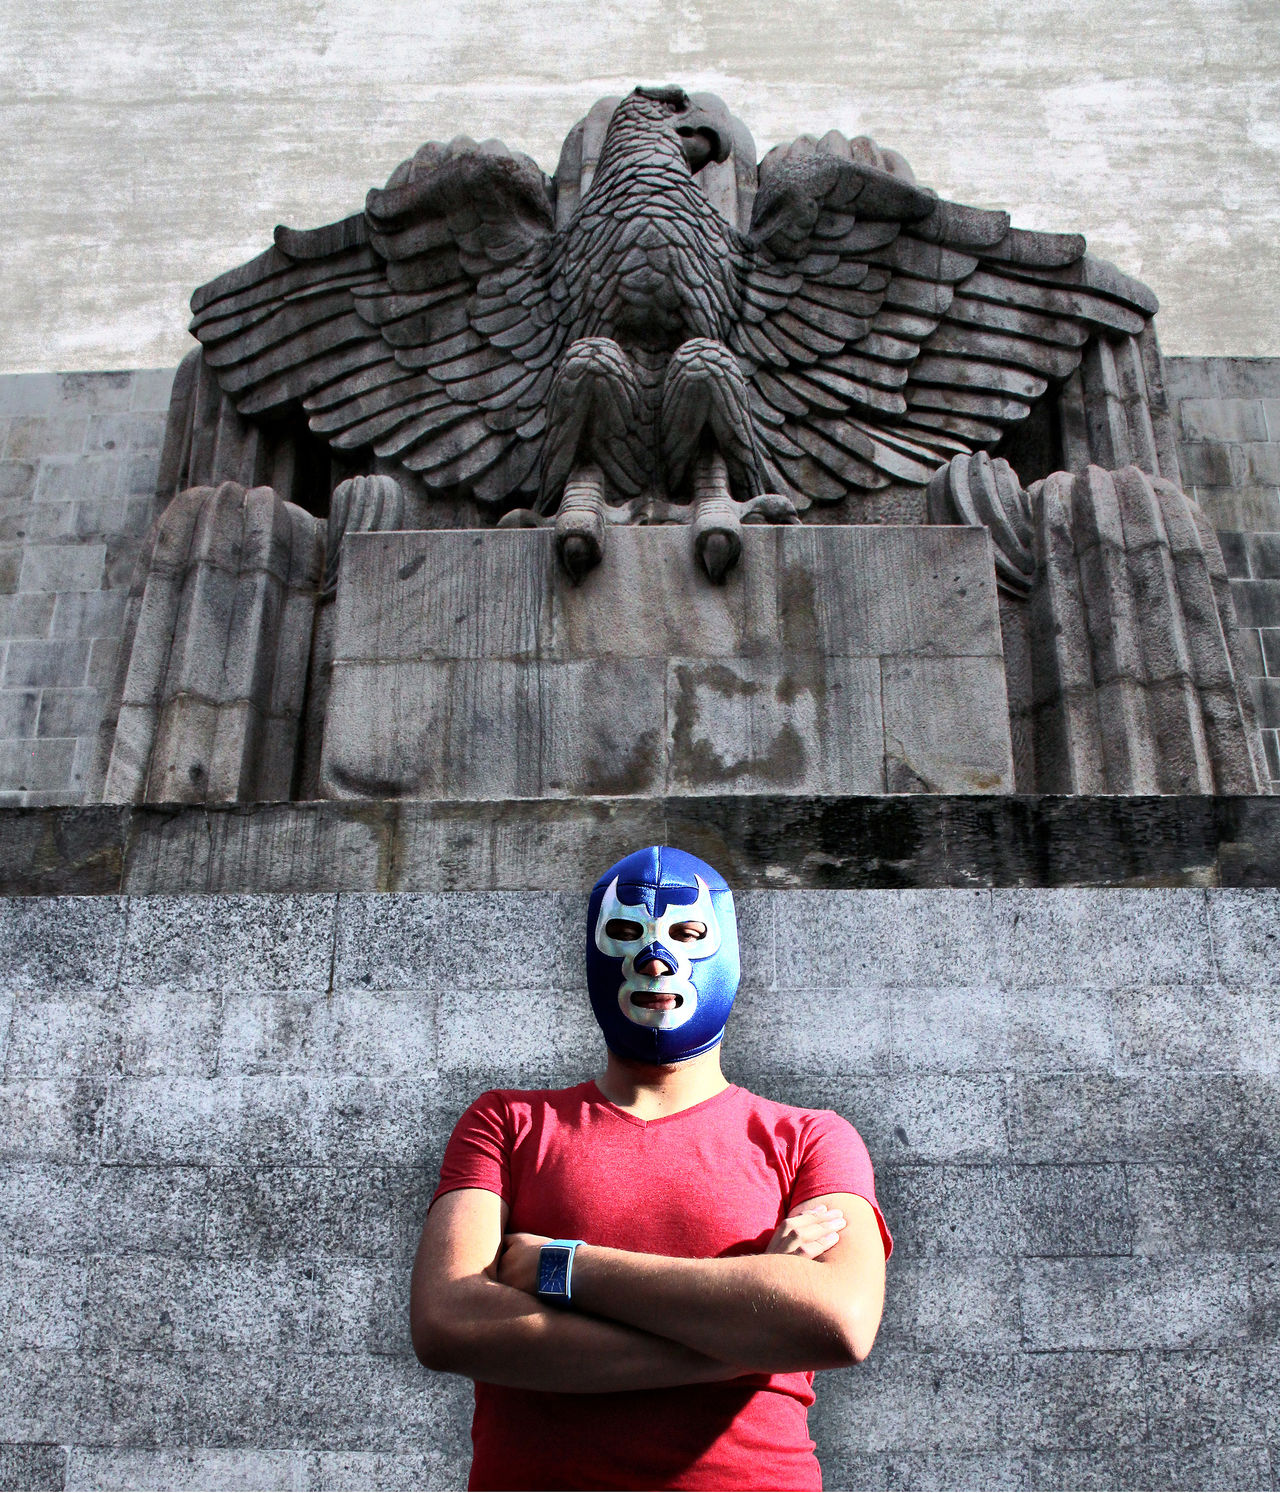 Homenaje al luchador e ídolo popular Blue Demon. Deportista y actor de cine. Blue Demon Blue Demon Tribute Eagle Fake HDR Mask Sports Stone Carving Tribute Wrestling Showcase June